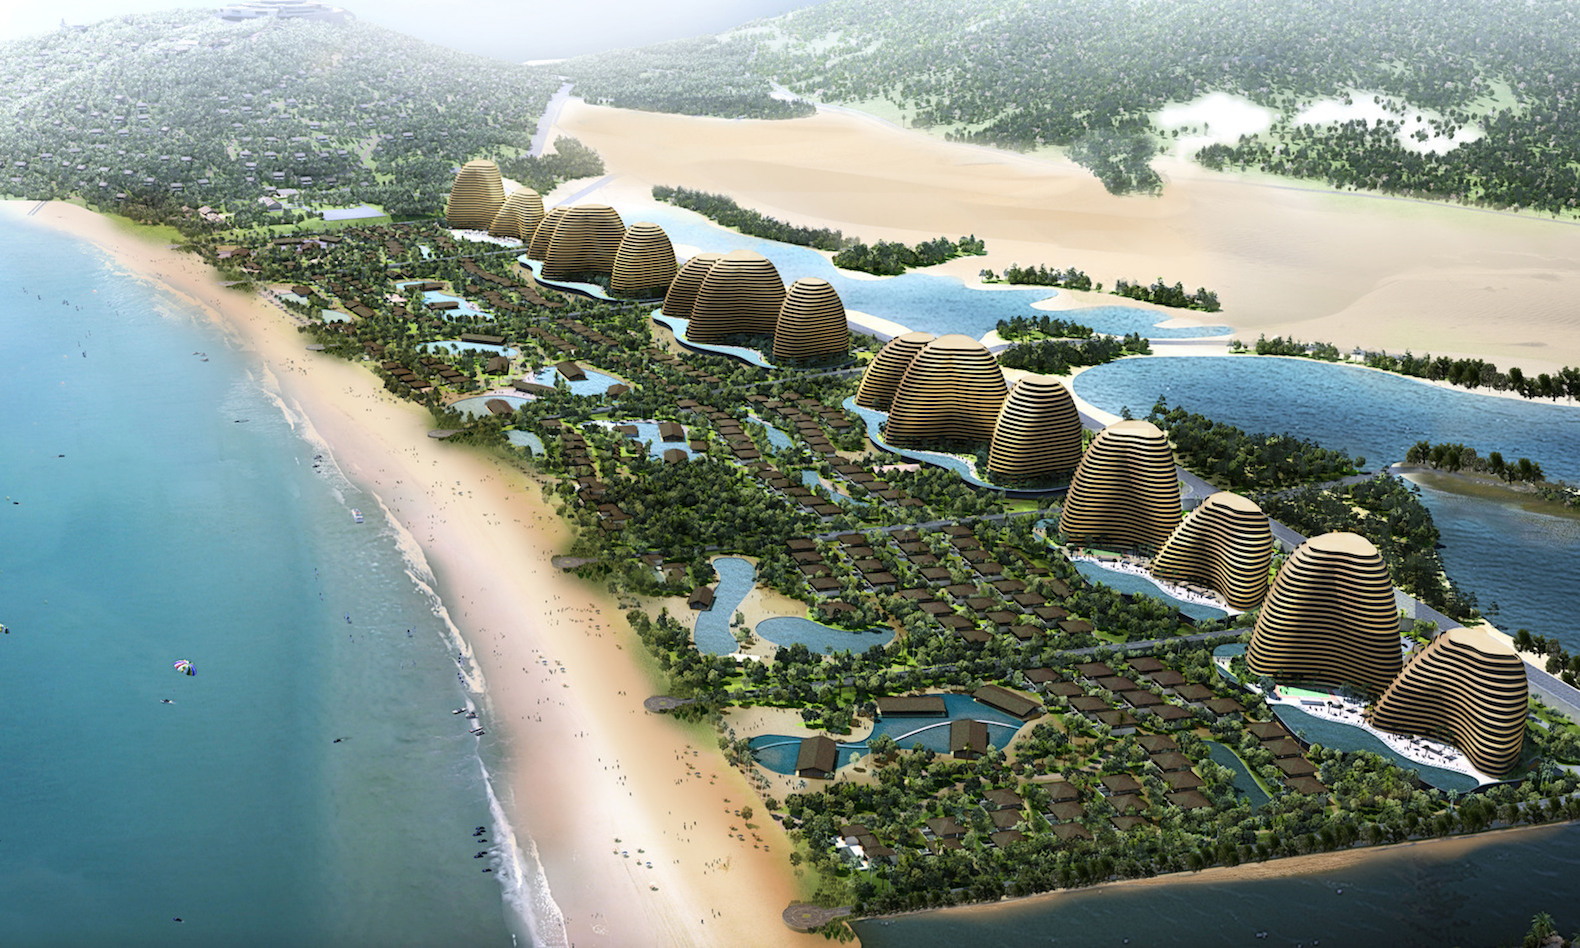 Massive eco-resort with a theme park to rise on Vietnam's beaches